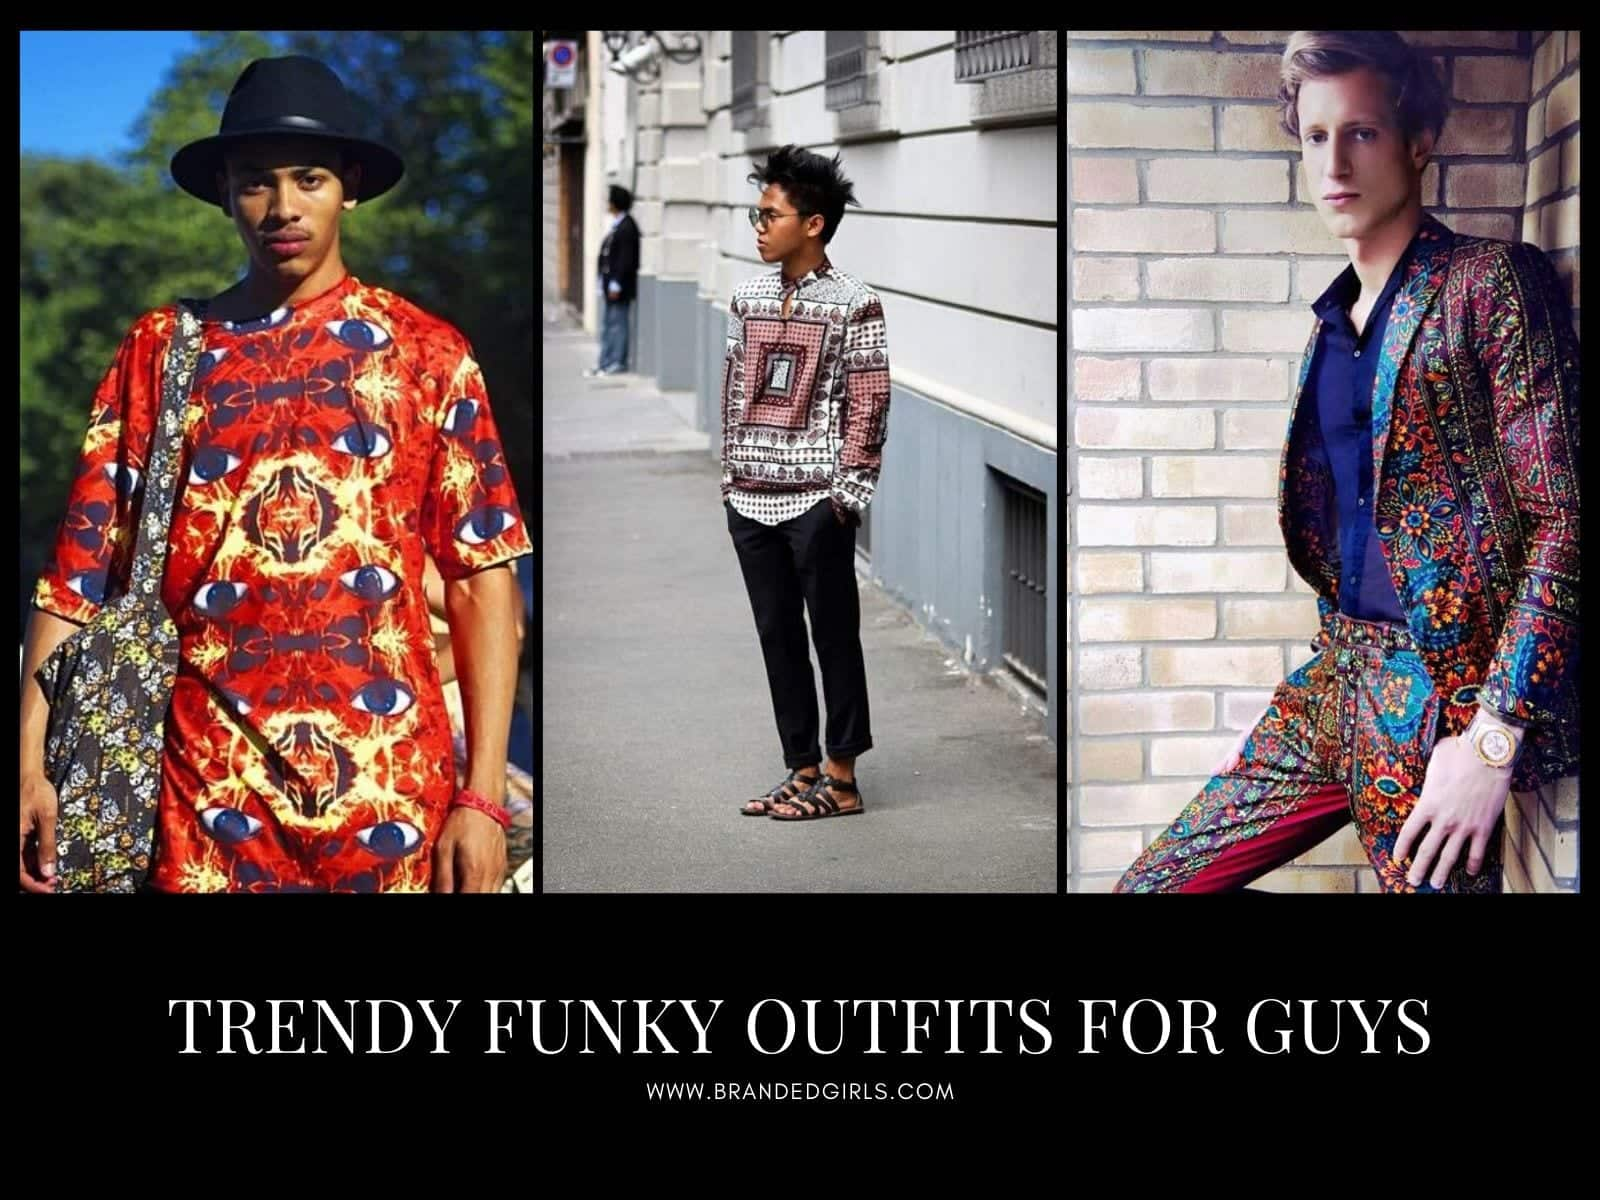 Trendy-Funky-Outfits-for-Boys 30 Funky Outfits for Guys Trending These Days